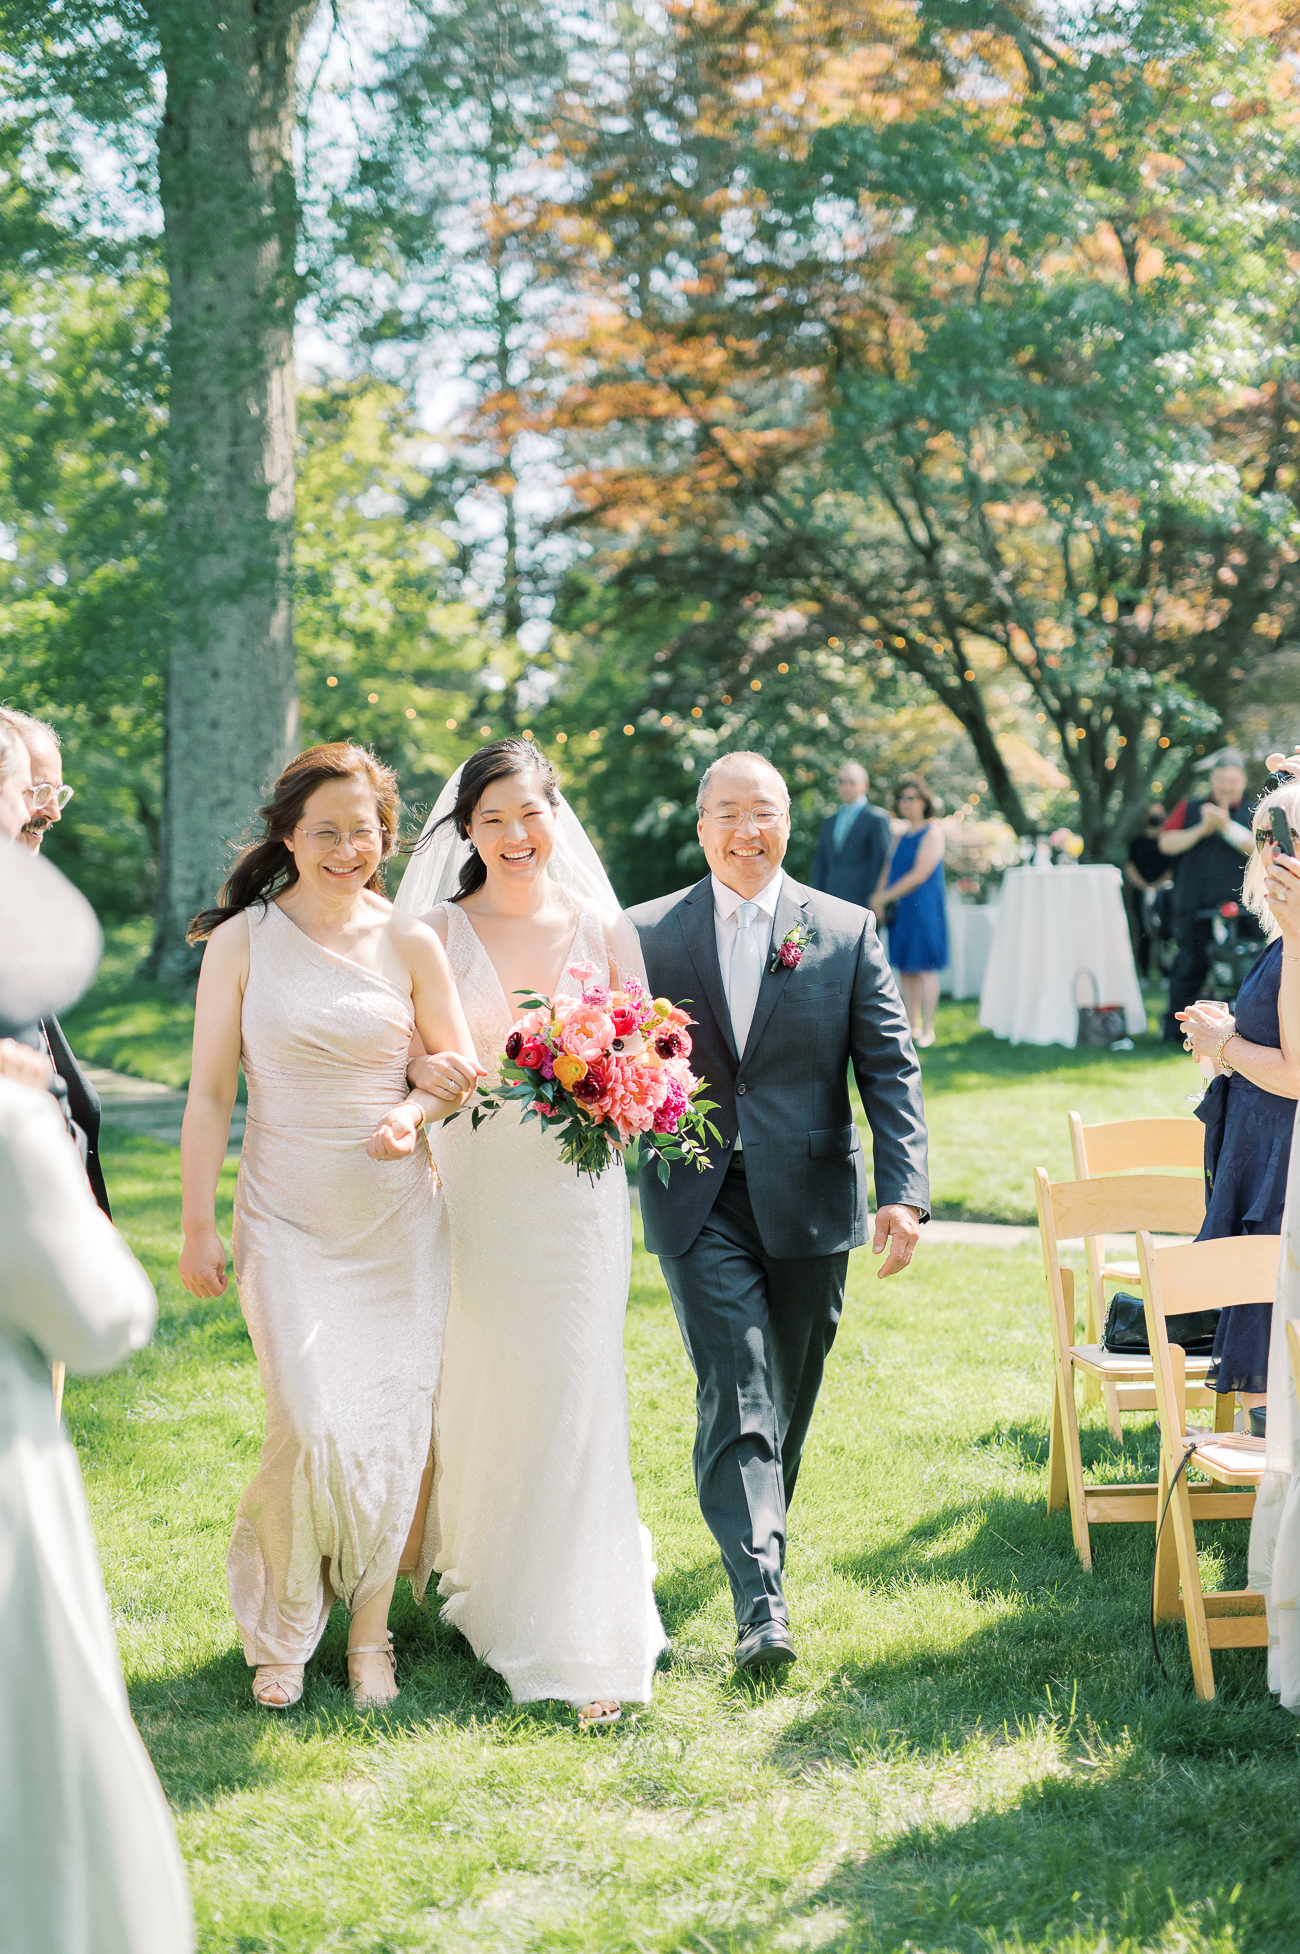 Sarah walking down the aisle with her parents